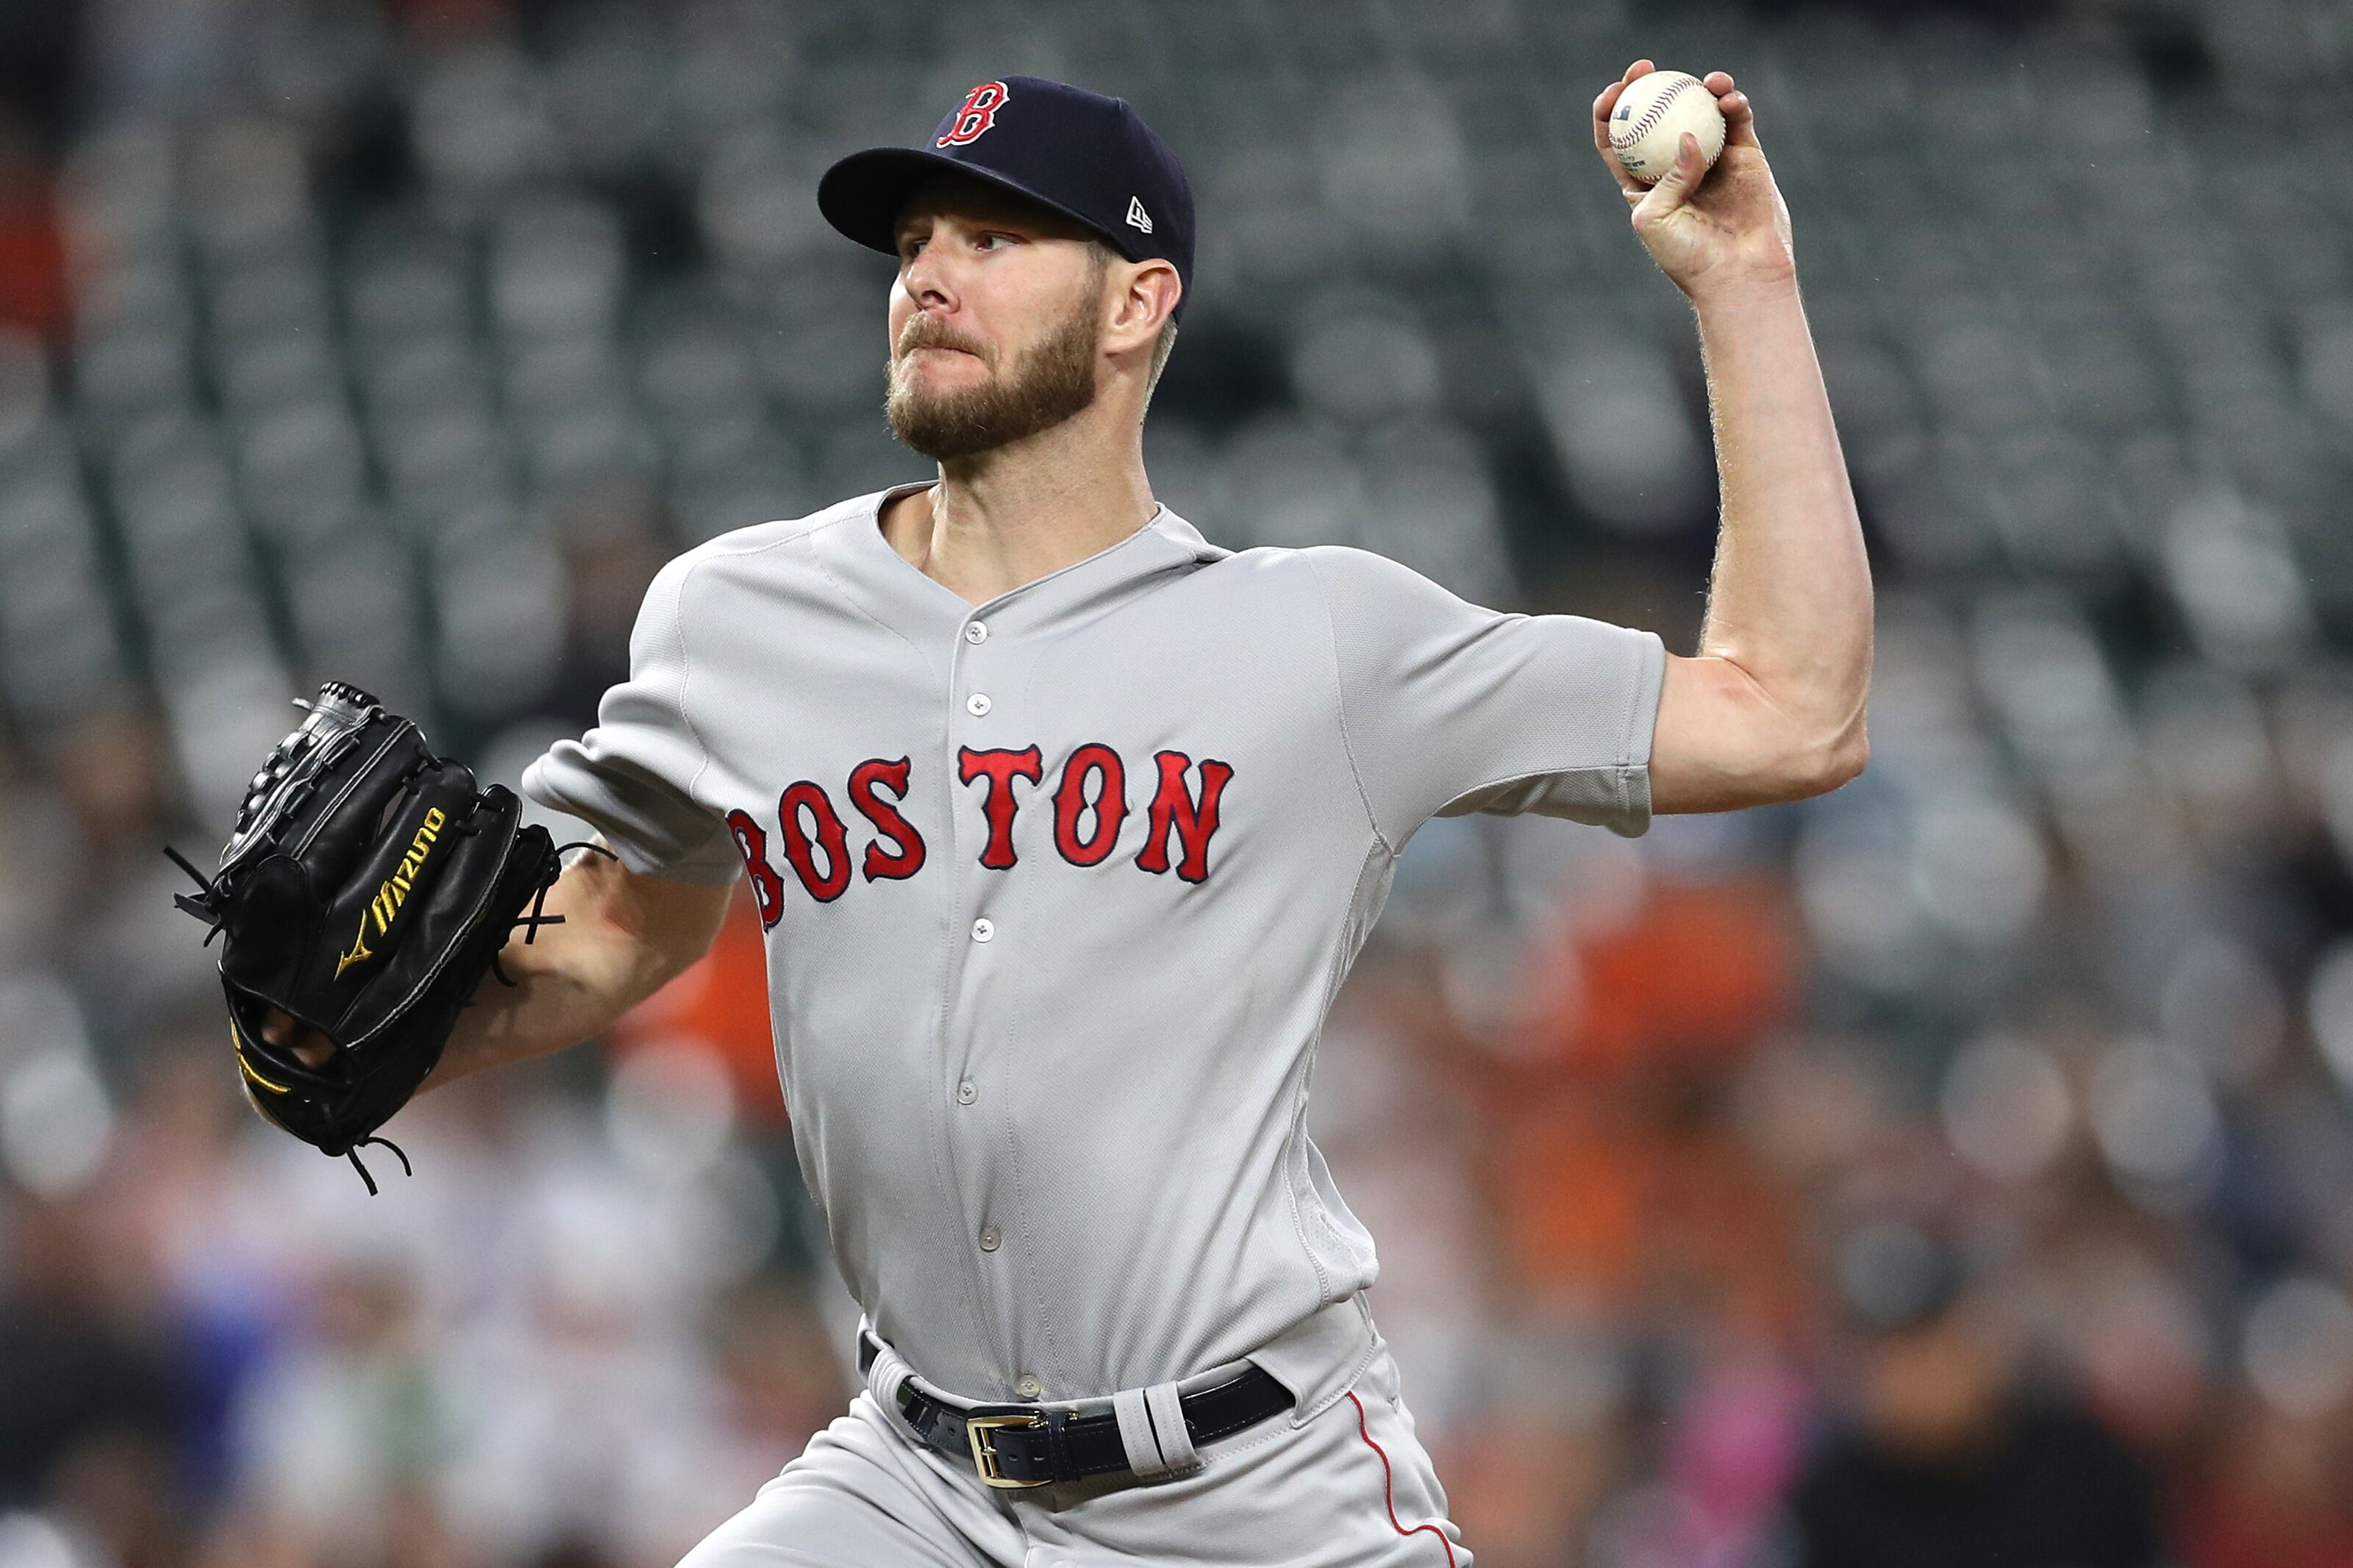 Red Sox Trade Rumors: Rangers interested in Boston's high-priced starting pitchers